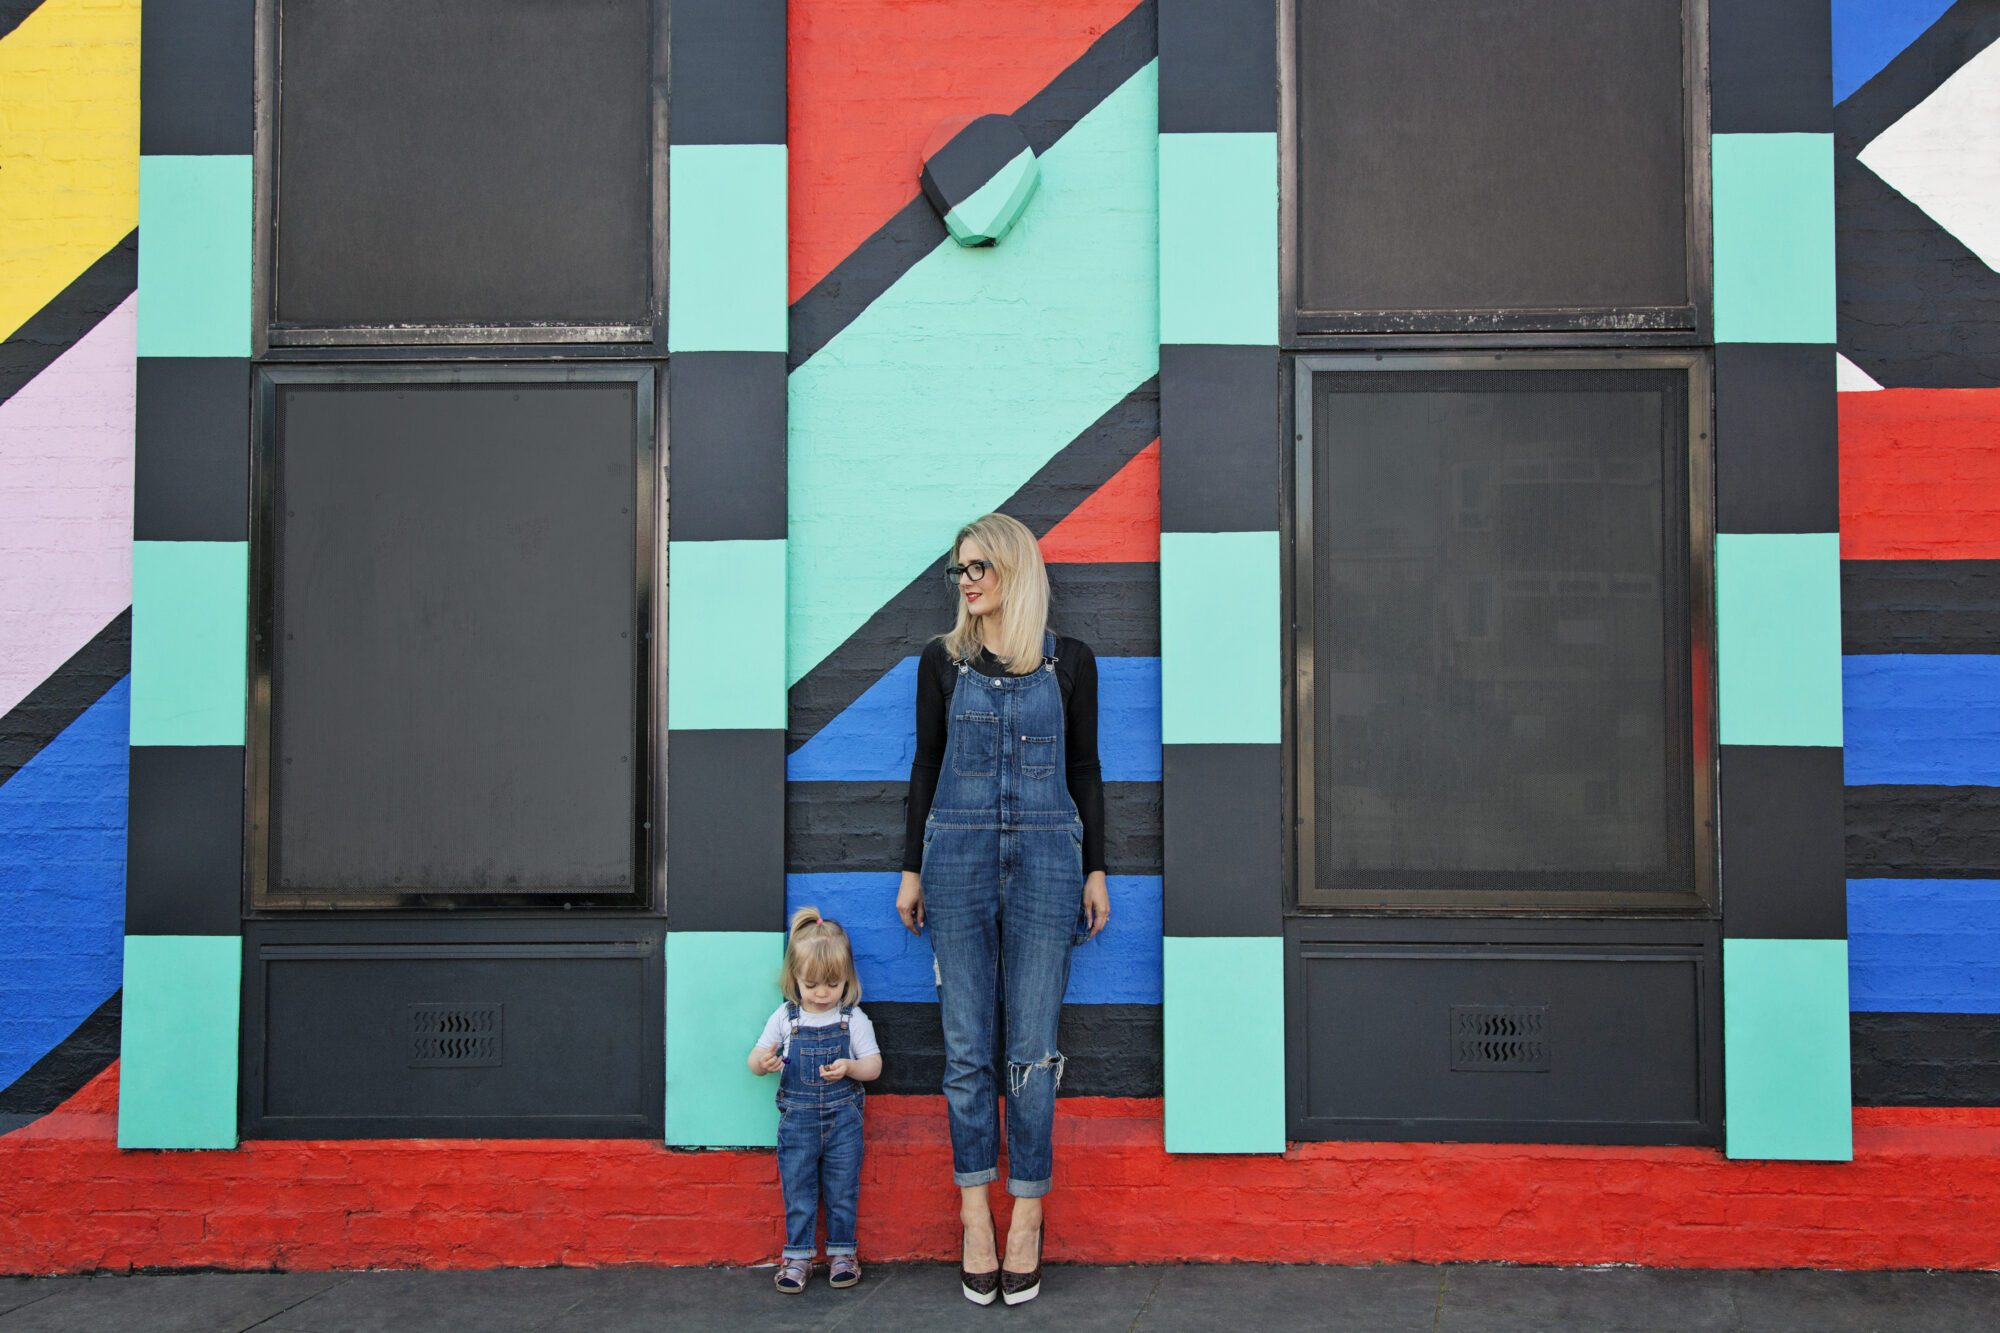 Anna from Mother Pukka, with her daughter Mae, in Shoreditch. Photographed outside the Splice TV building painted by Camille Walala.